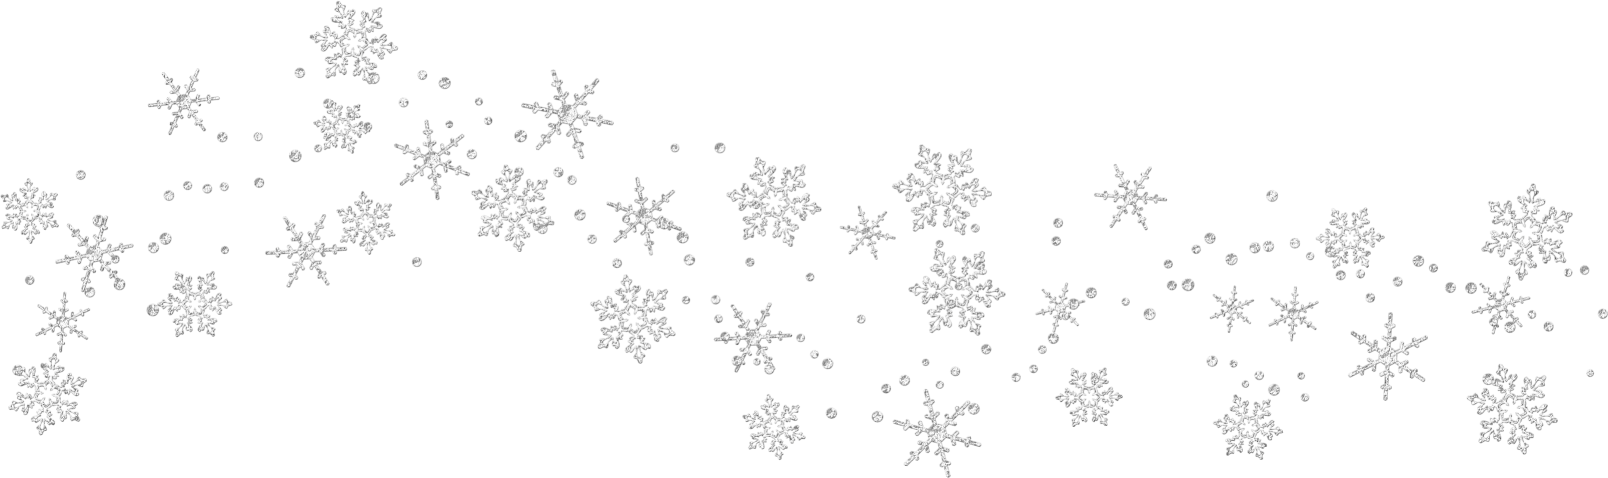 clipart royalty free library snowing clipart trail #49280422